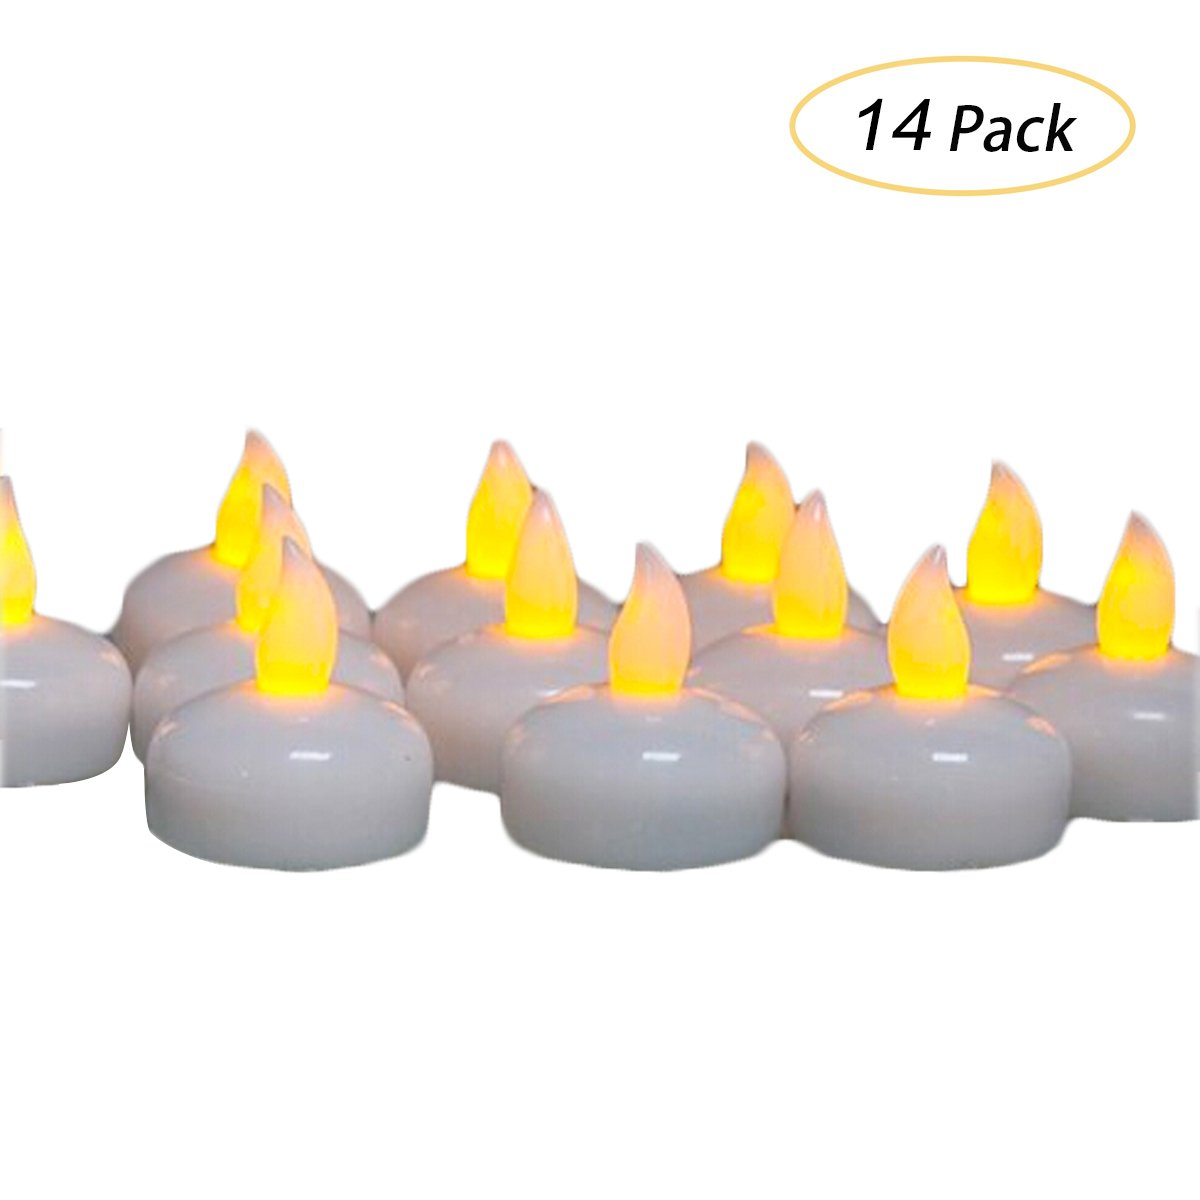 LED Floating Waterproof Flickering Tea light Candles by Glowseen- Water activated- Yellow-Pack of 14